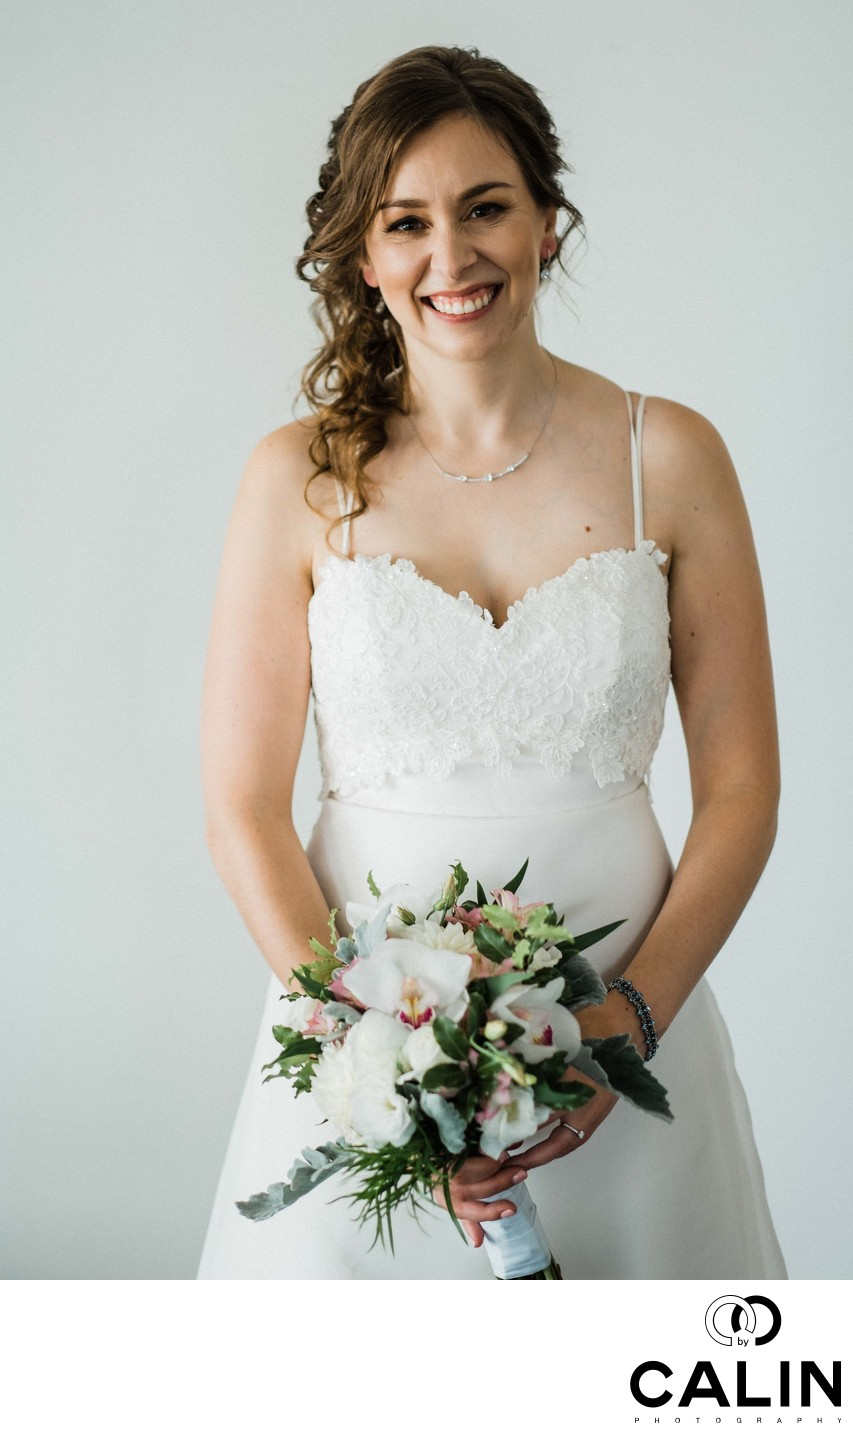 Bridal Portrait at a Thompson Hotel Toronto Wedding